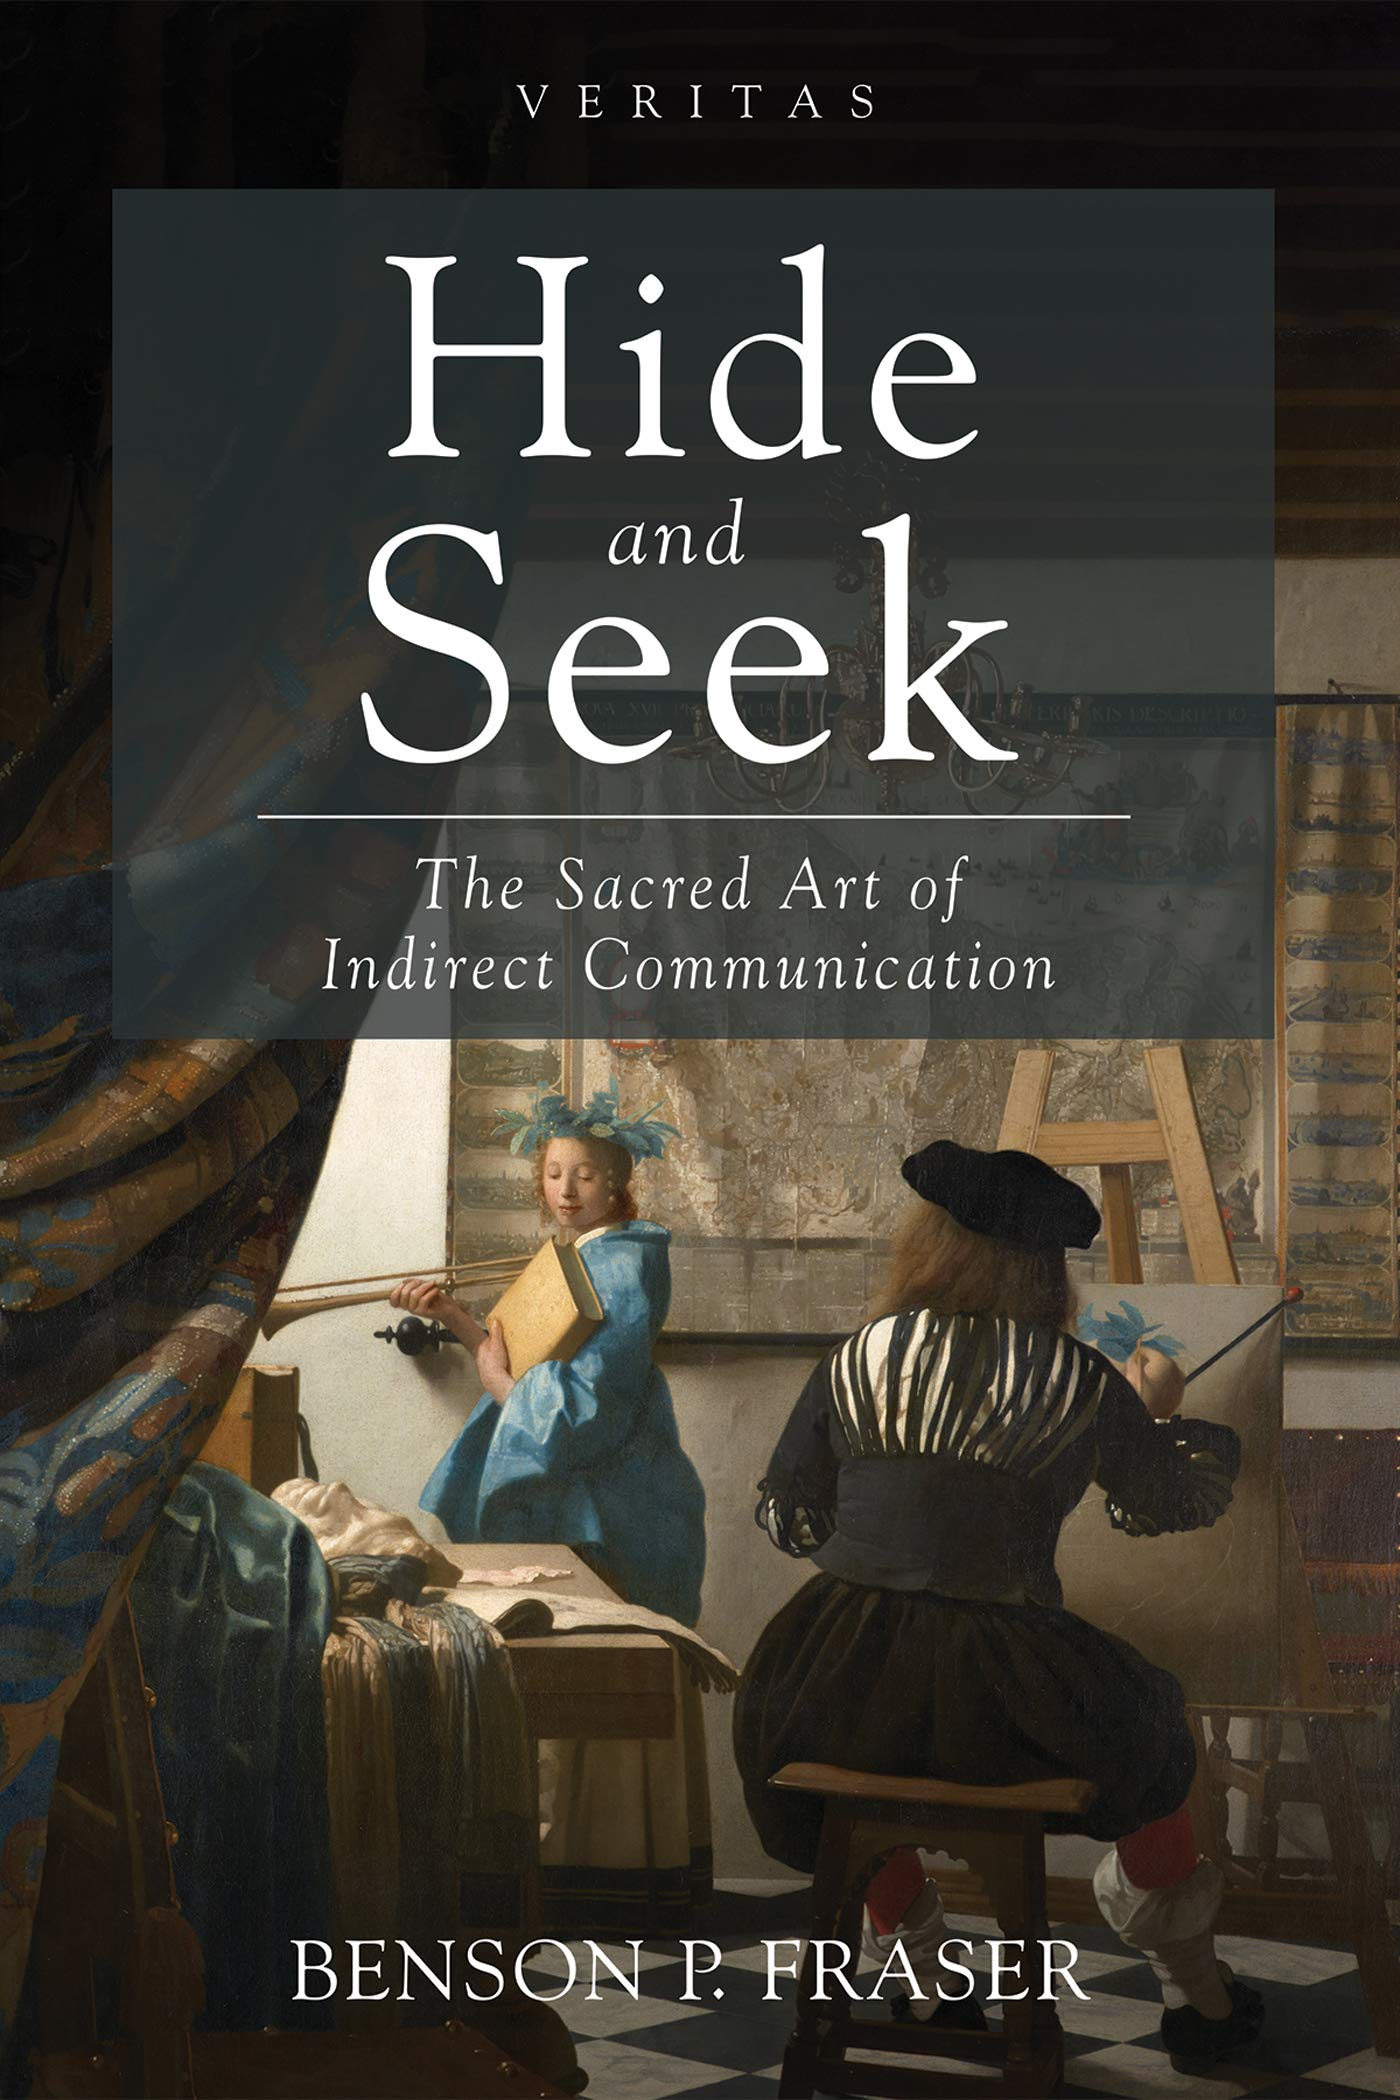 Hide and Seek: The Sacred Art of Indirect Communication